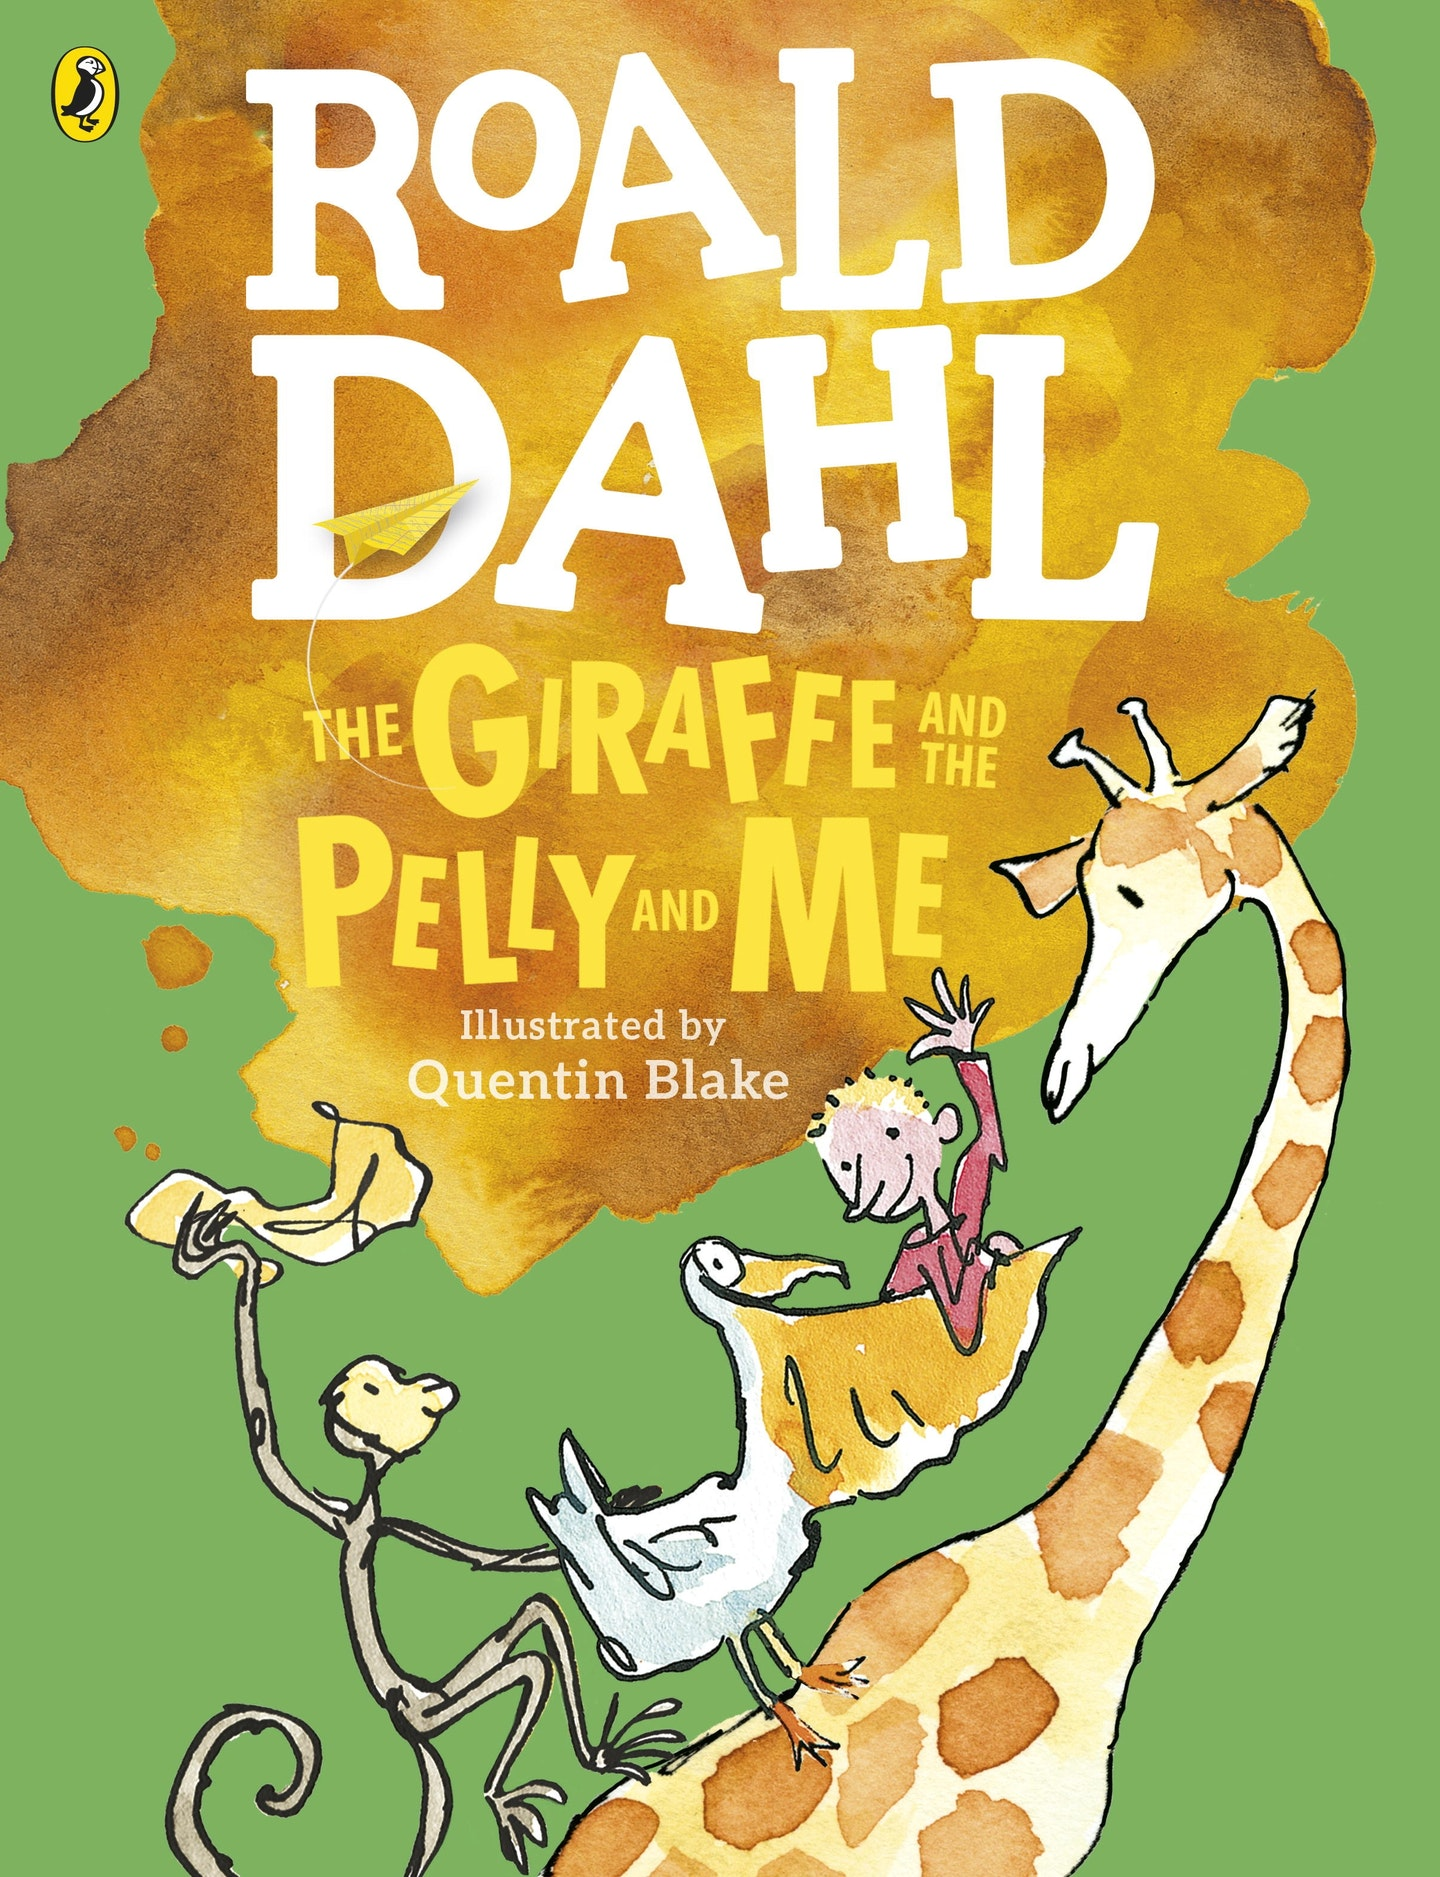 neck roald dahl The unabridged, downloadable audiobook edition of neck, a short, sharp, frightening story from roald dahl, the master of the shocking tale read by the actor julian rhind-tuttin neck, roald.